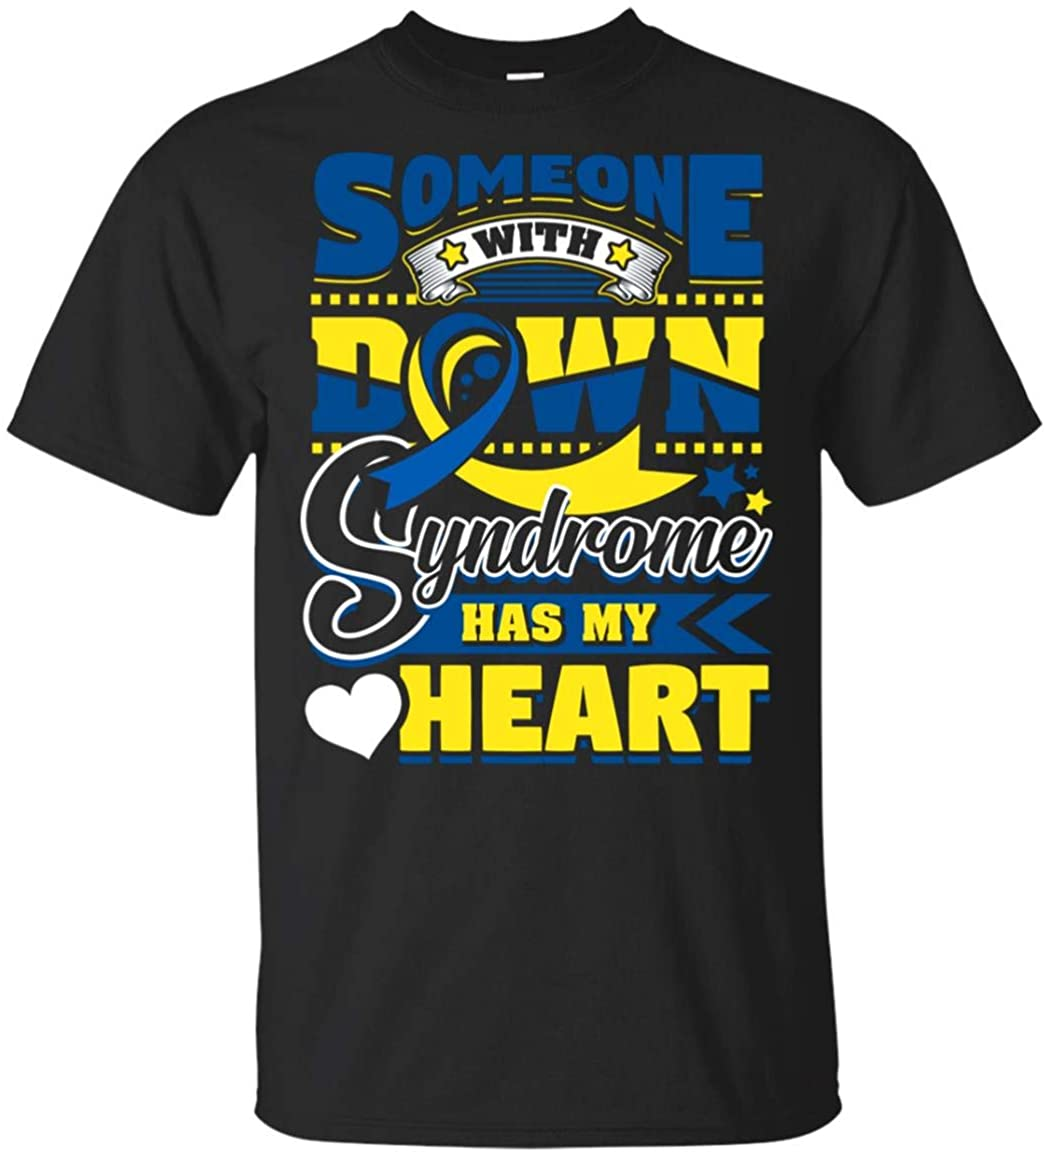 Daily Motivational and Funny Quotes Someone with Down Syndrome has My Heart t-Shirt